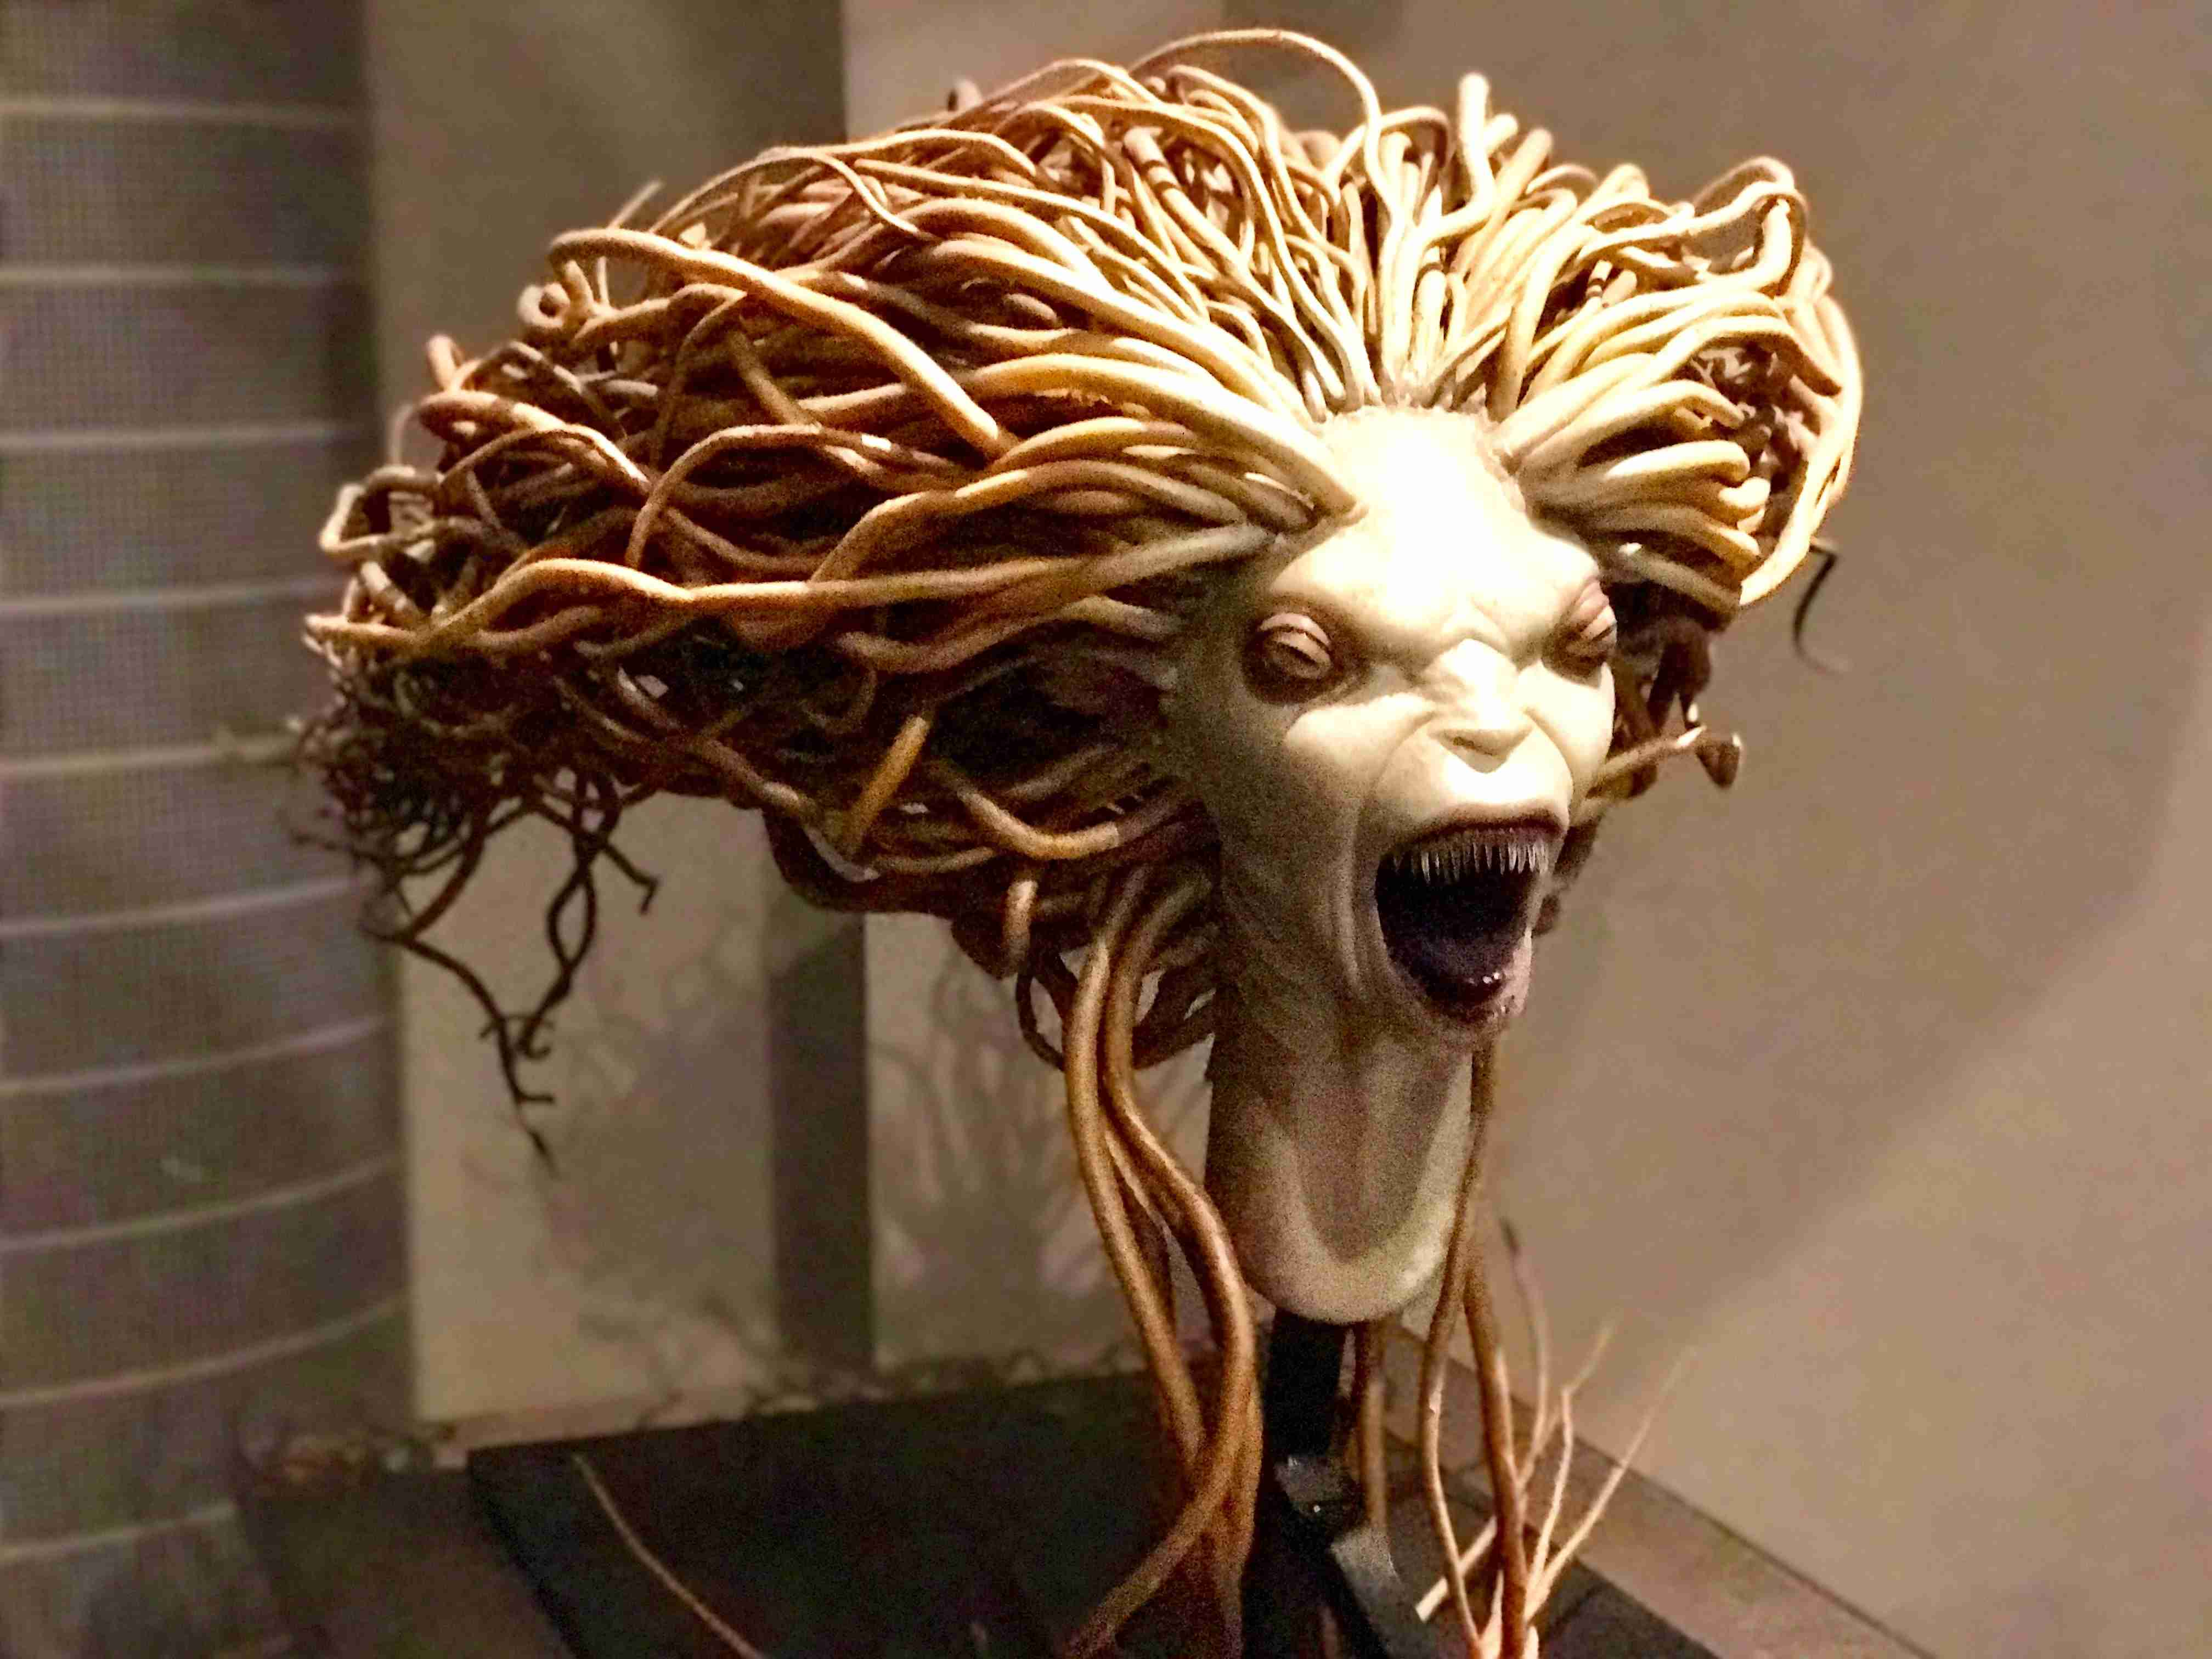 scary mermaid head Harry Potter Studios